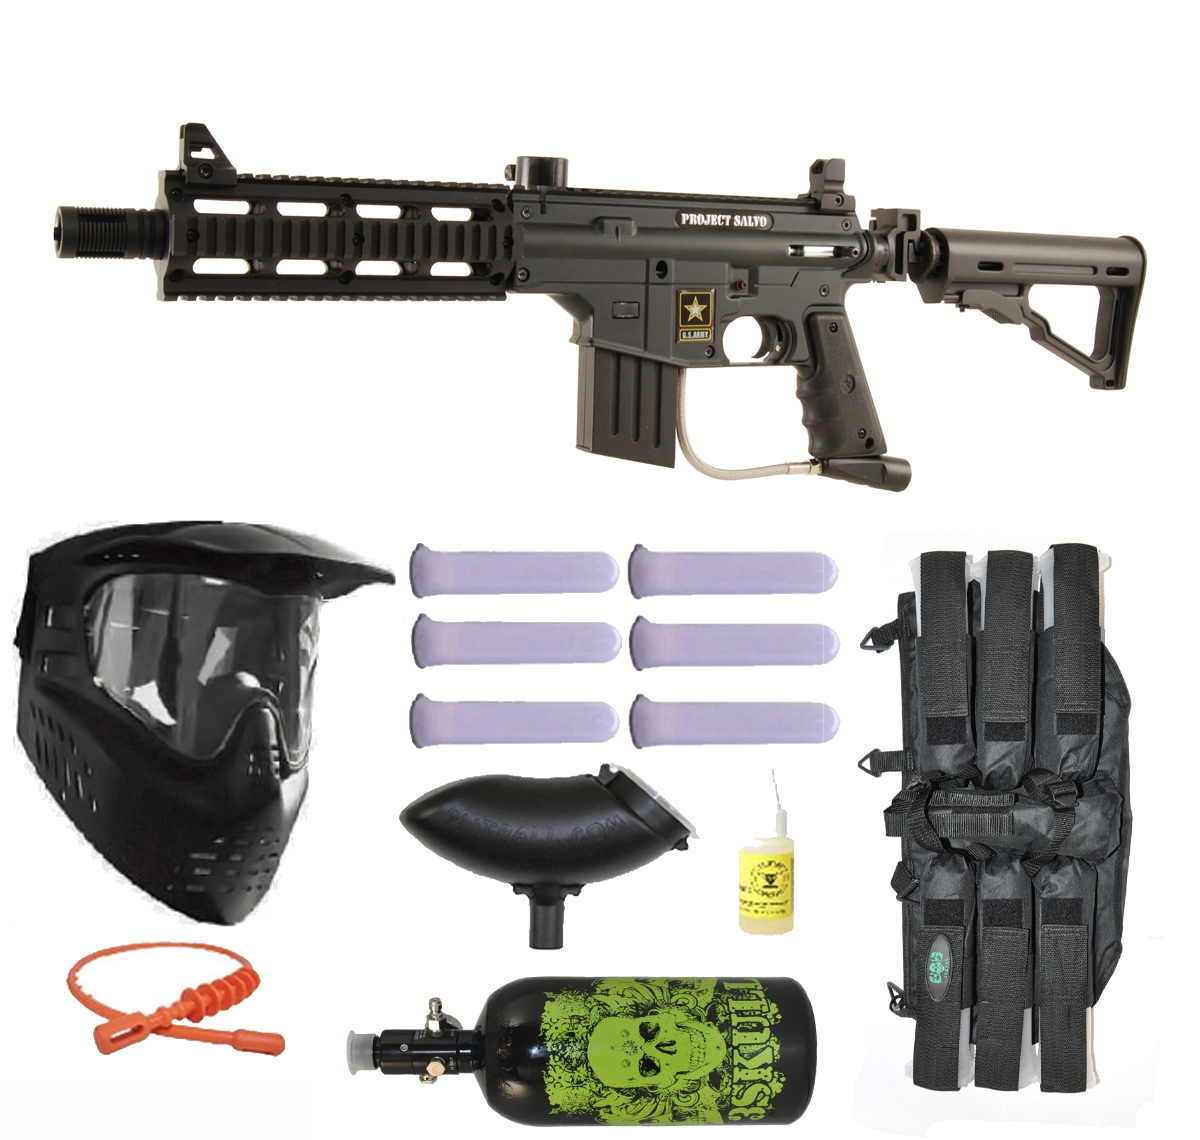 US Army Project Salvo Paintball Marker Gun 3Skull N2 Mega Set - Black